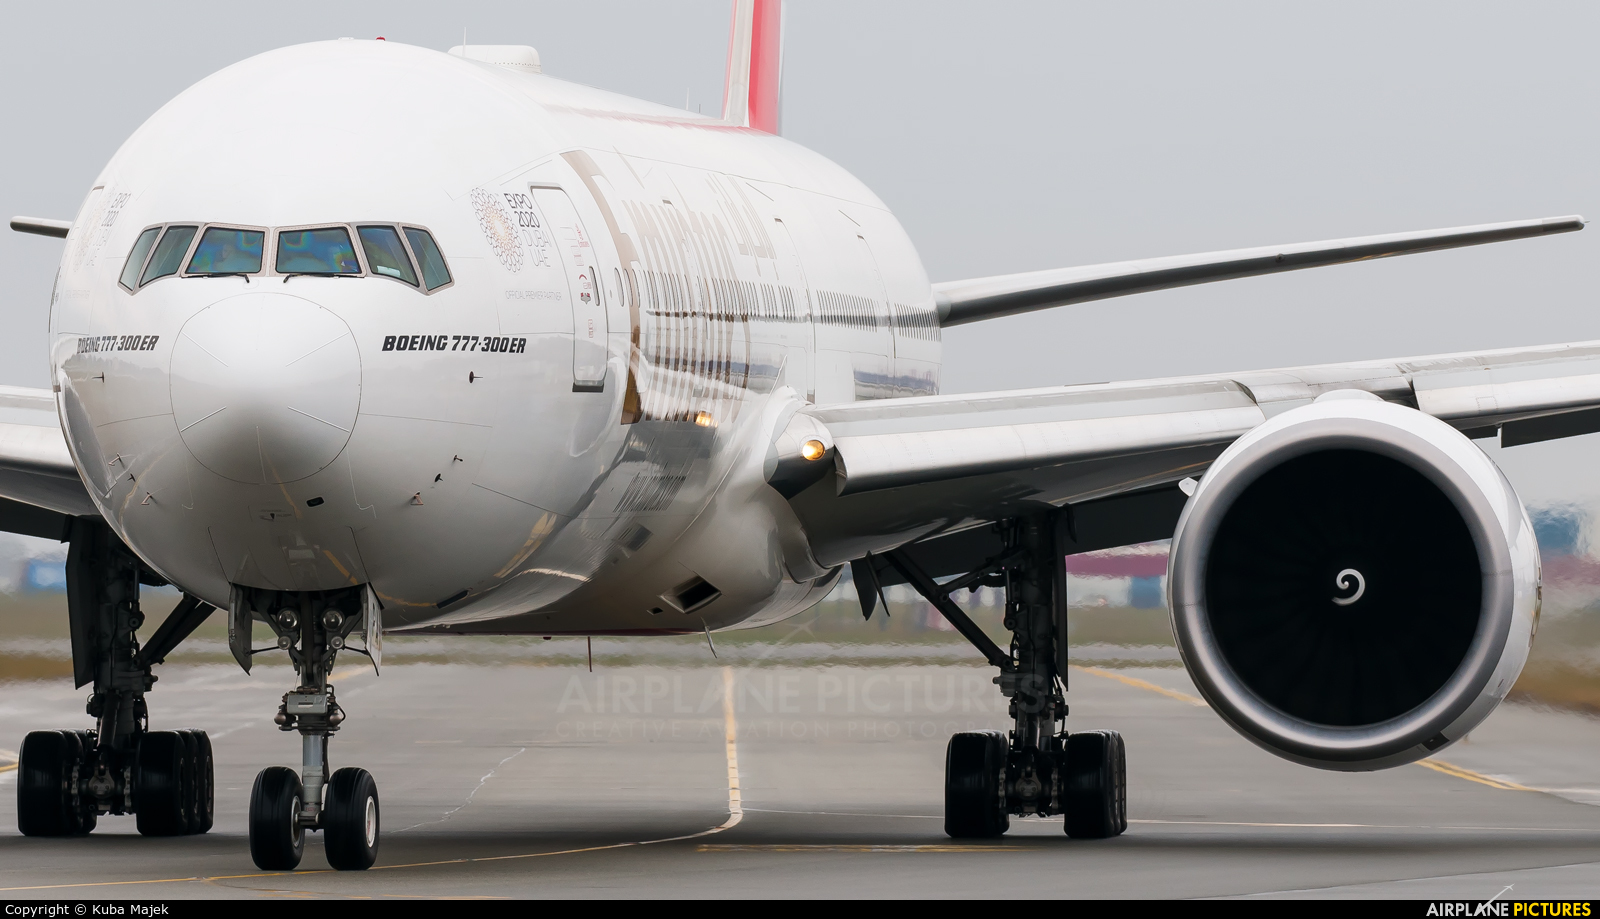 Emirates Airlines A6-EPA aircraft at Warsaw - Frederic Chopin